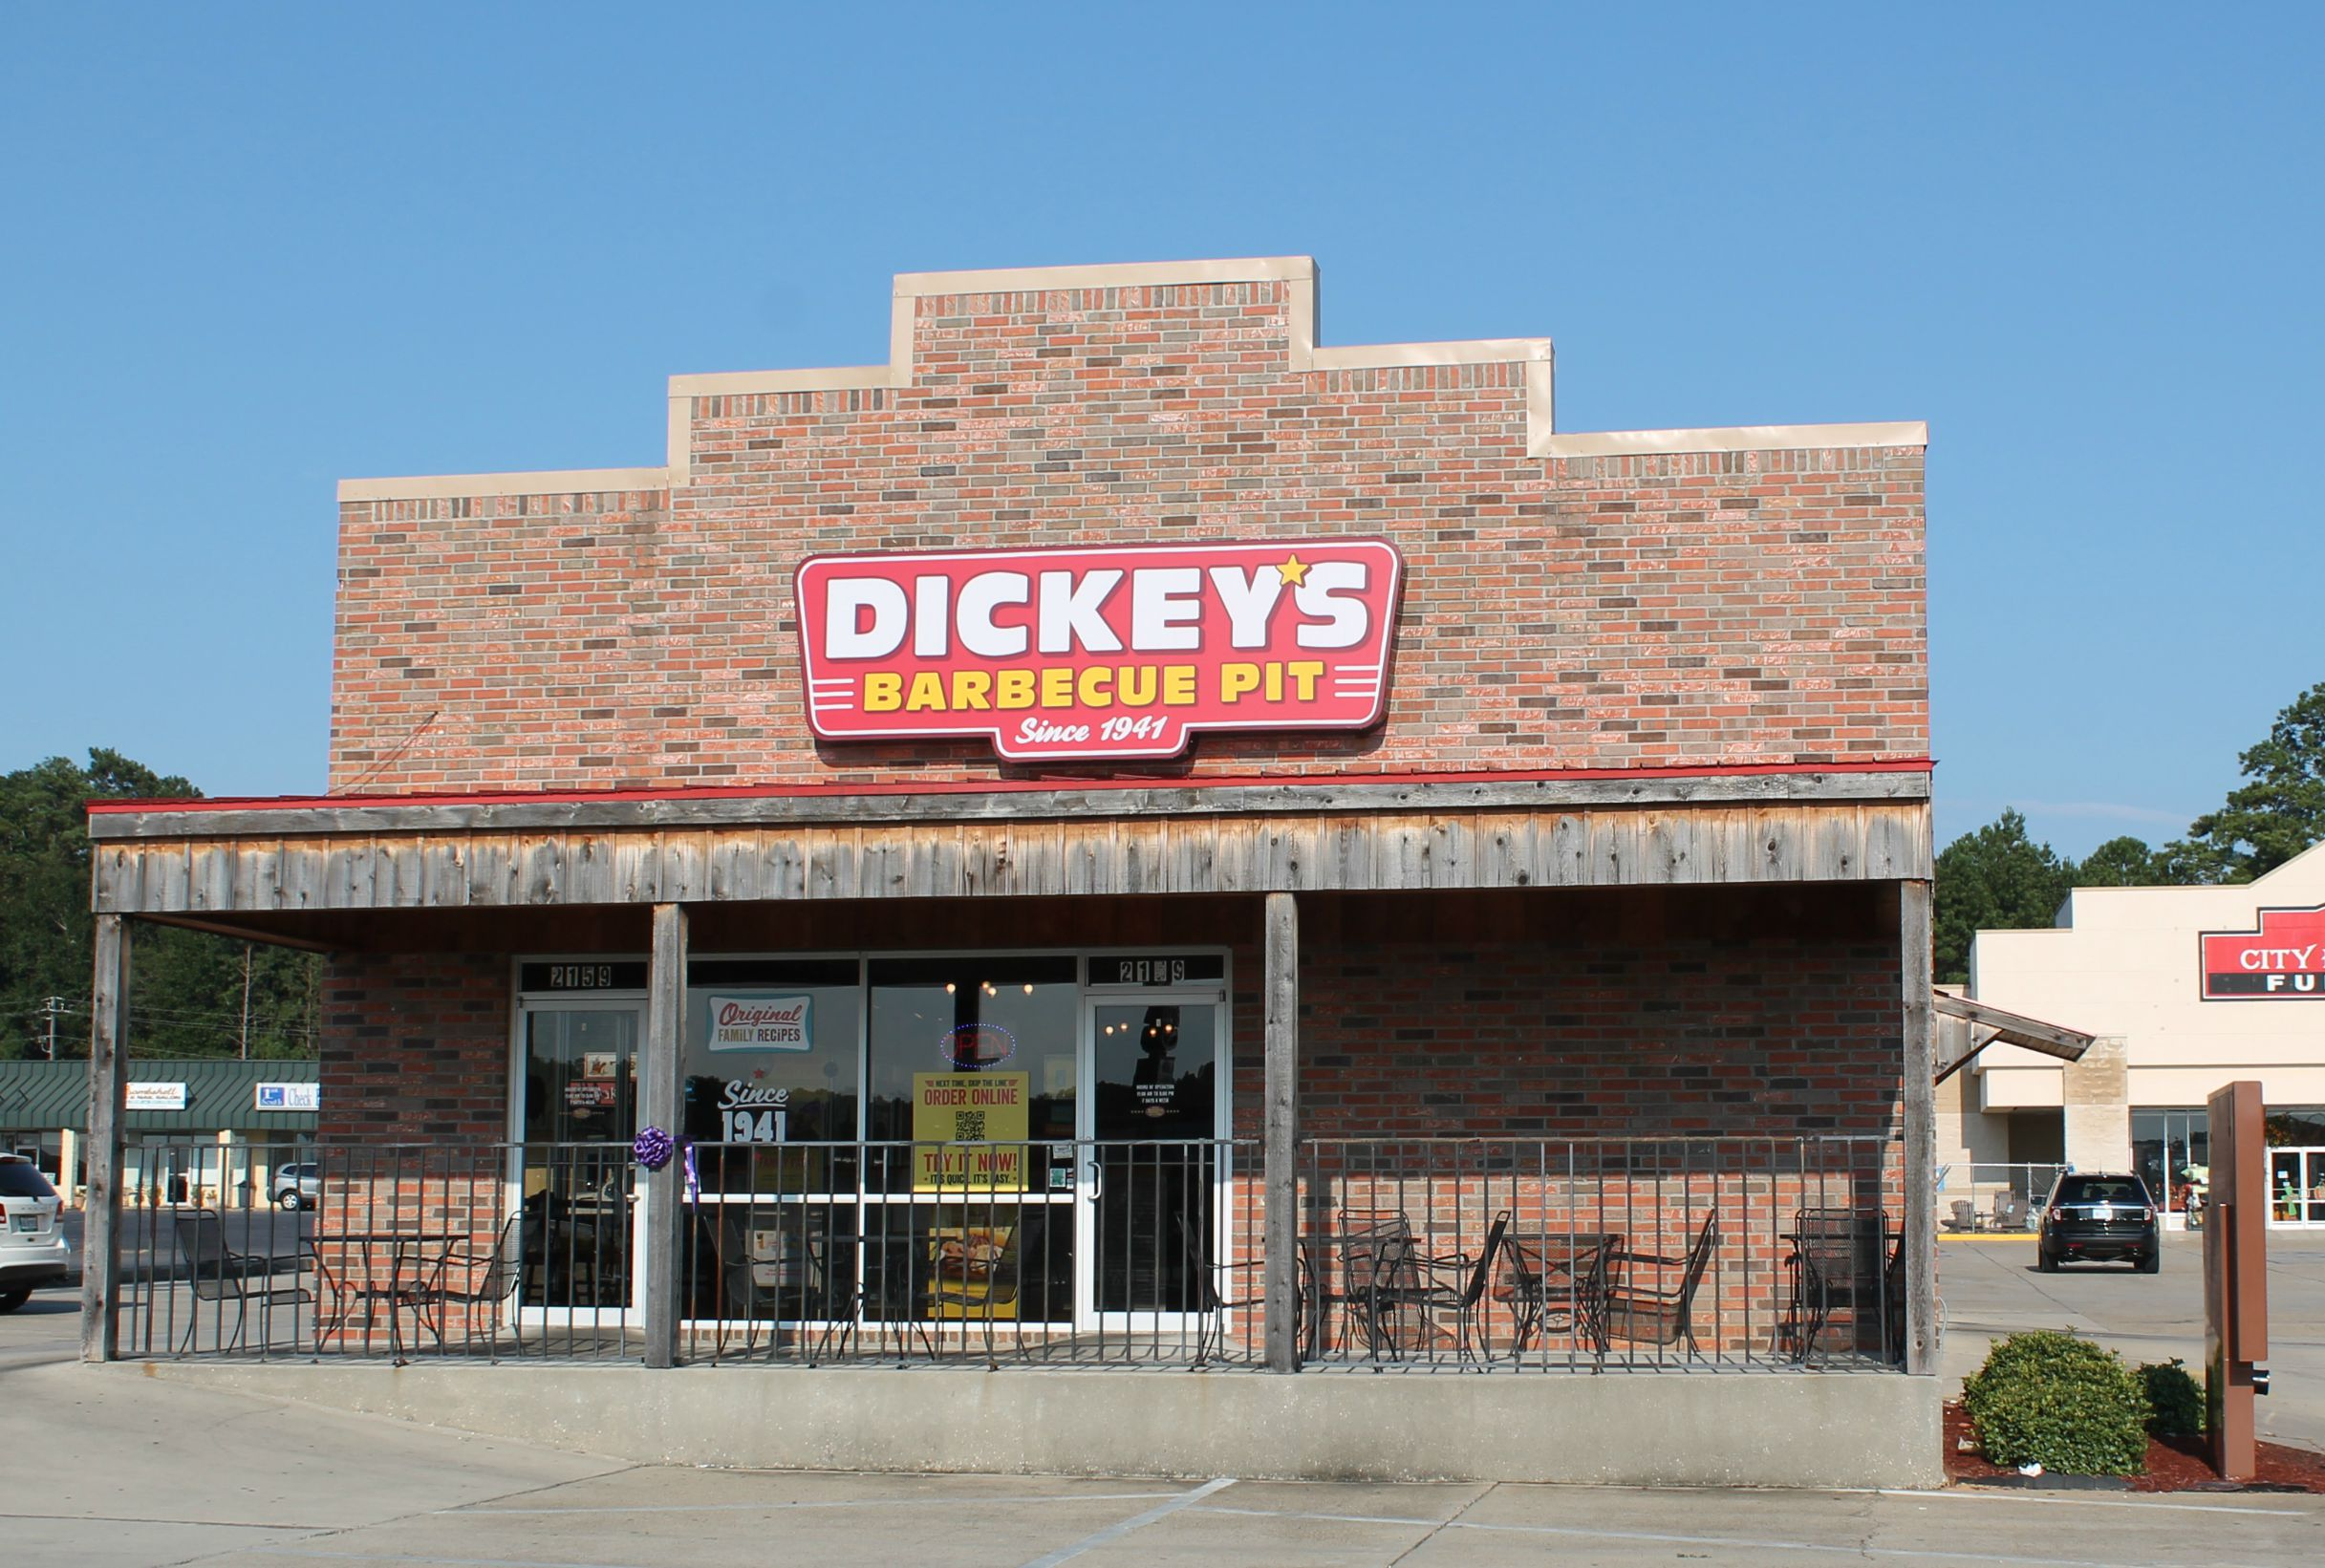 About DICKEY'S BARBECUE PIT: Dickey's Barbecue Pit is located at S MASON RD in KATY, TX - Fort Bend County and is a business listed in the categories Barbecue Restaurants, Limited-Service Restaurants, Barbecued Foods and Restaurants.